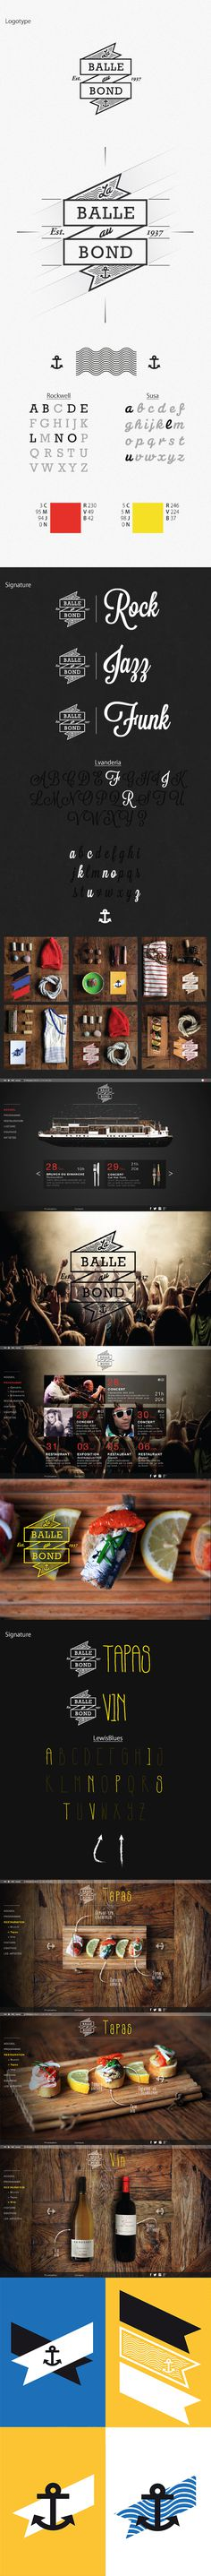 Balle au Bond on Behance